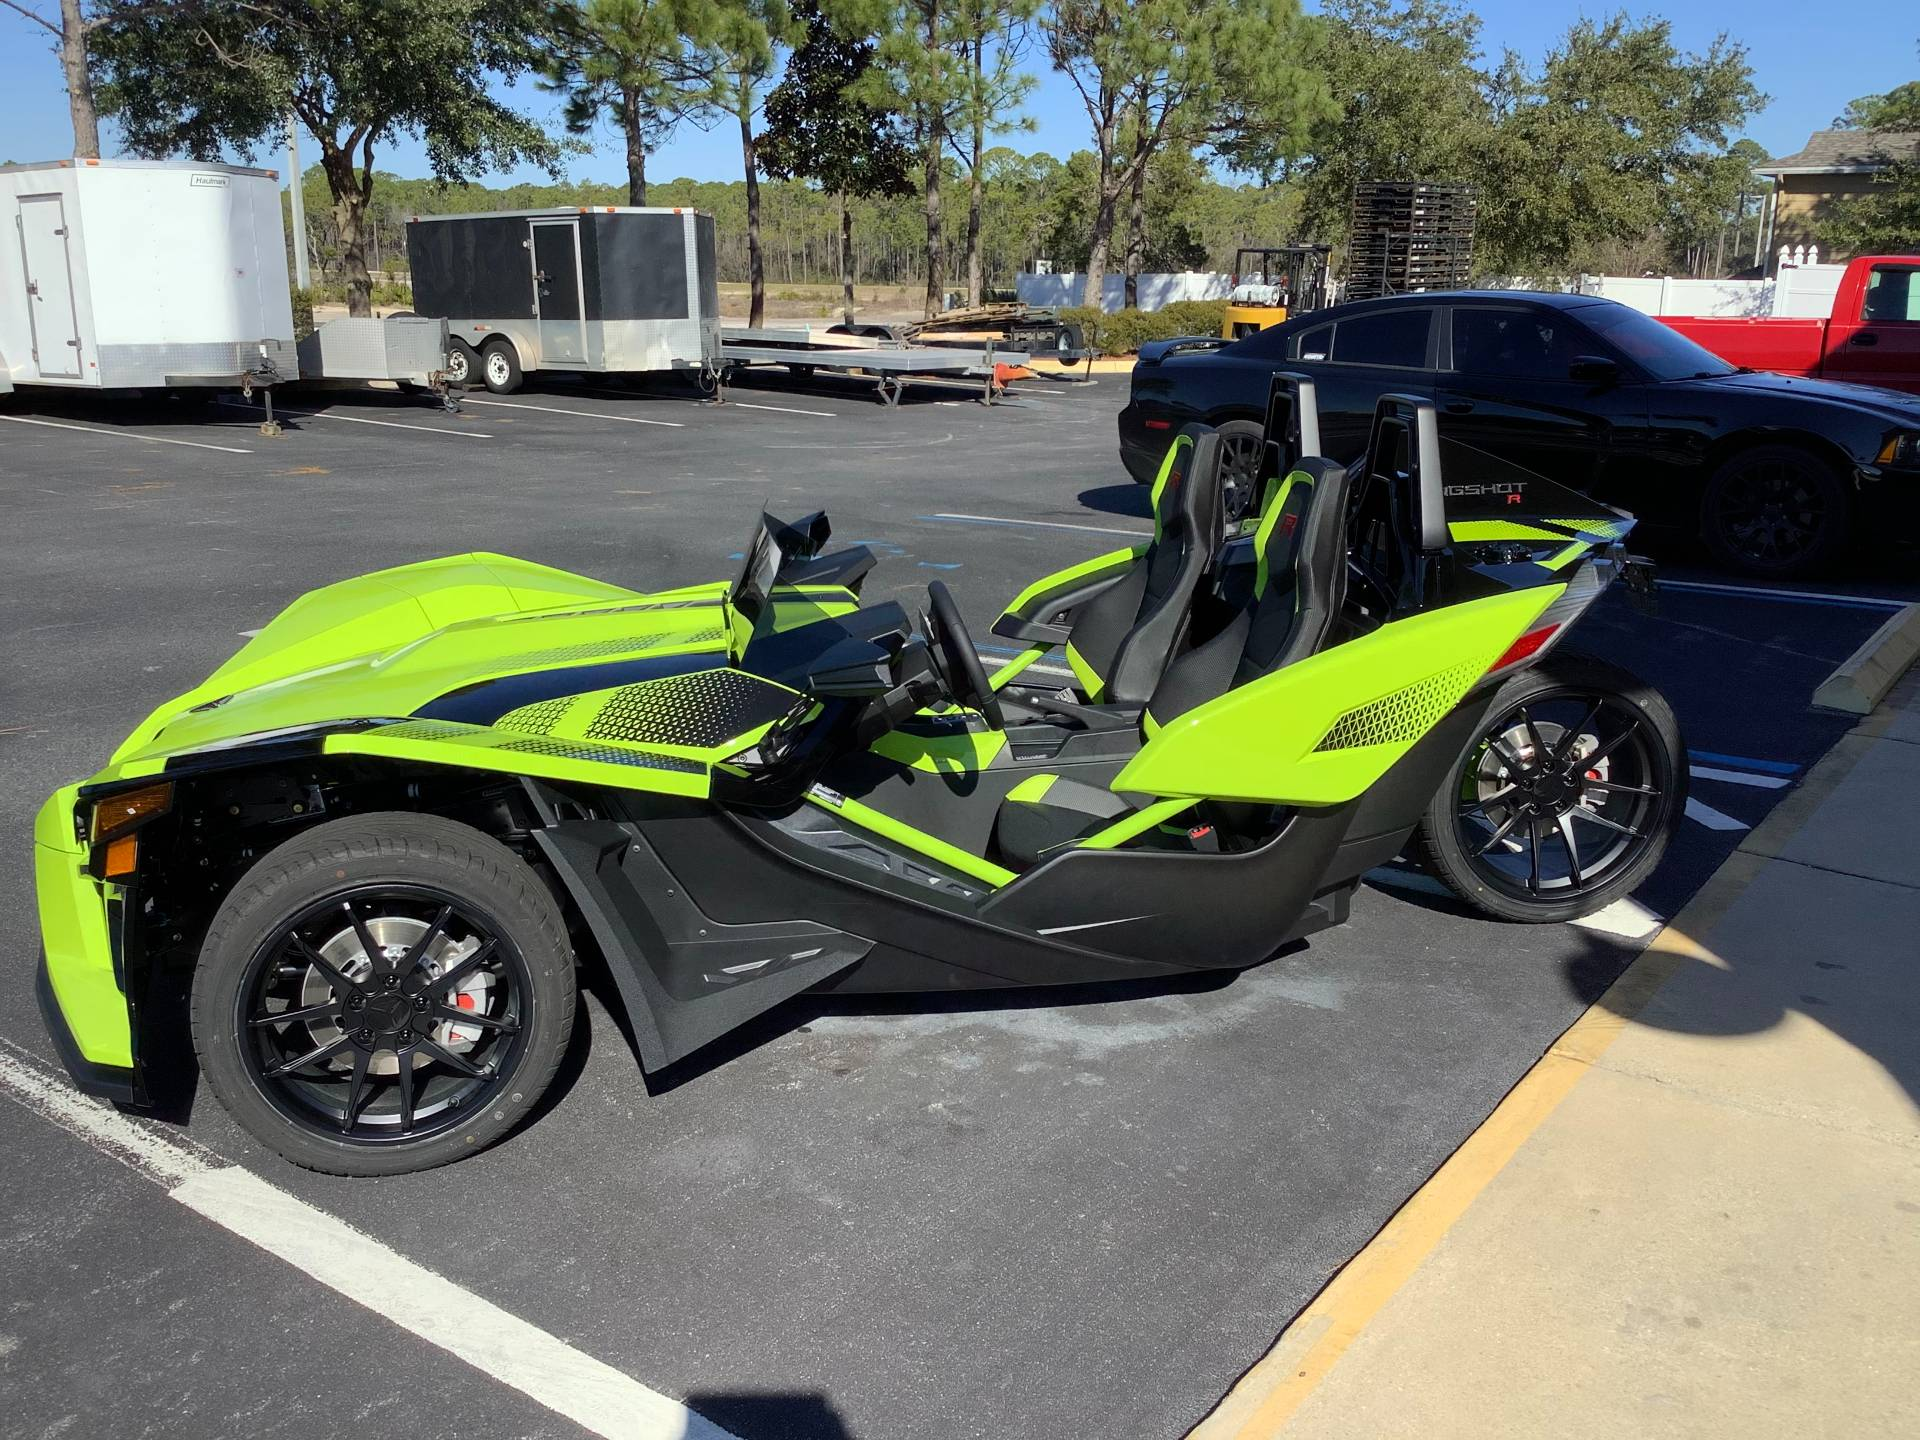 2021 Polaris Slingshot R LE AUTODRIVE in Panama City Beach, Florida - Photo 7